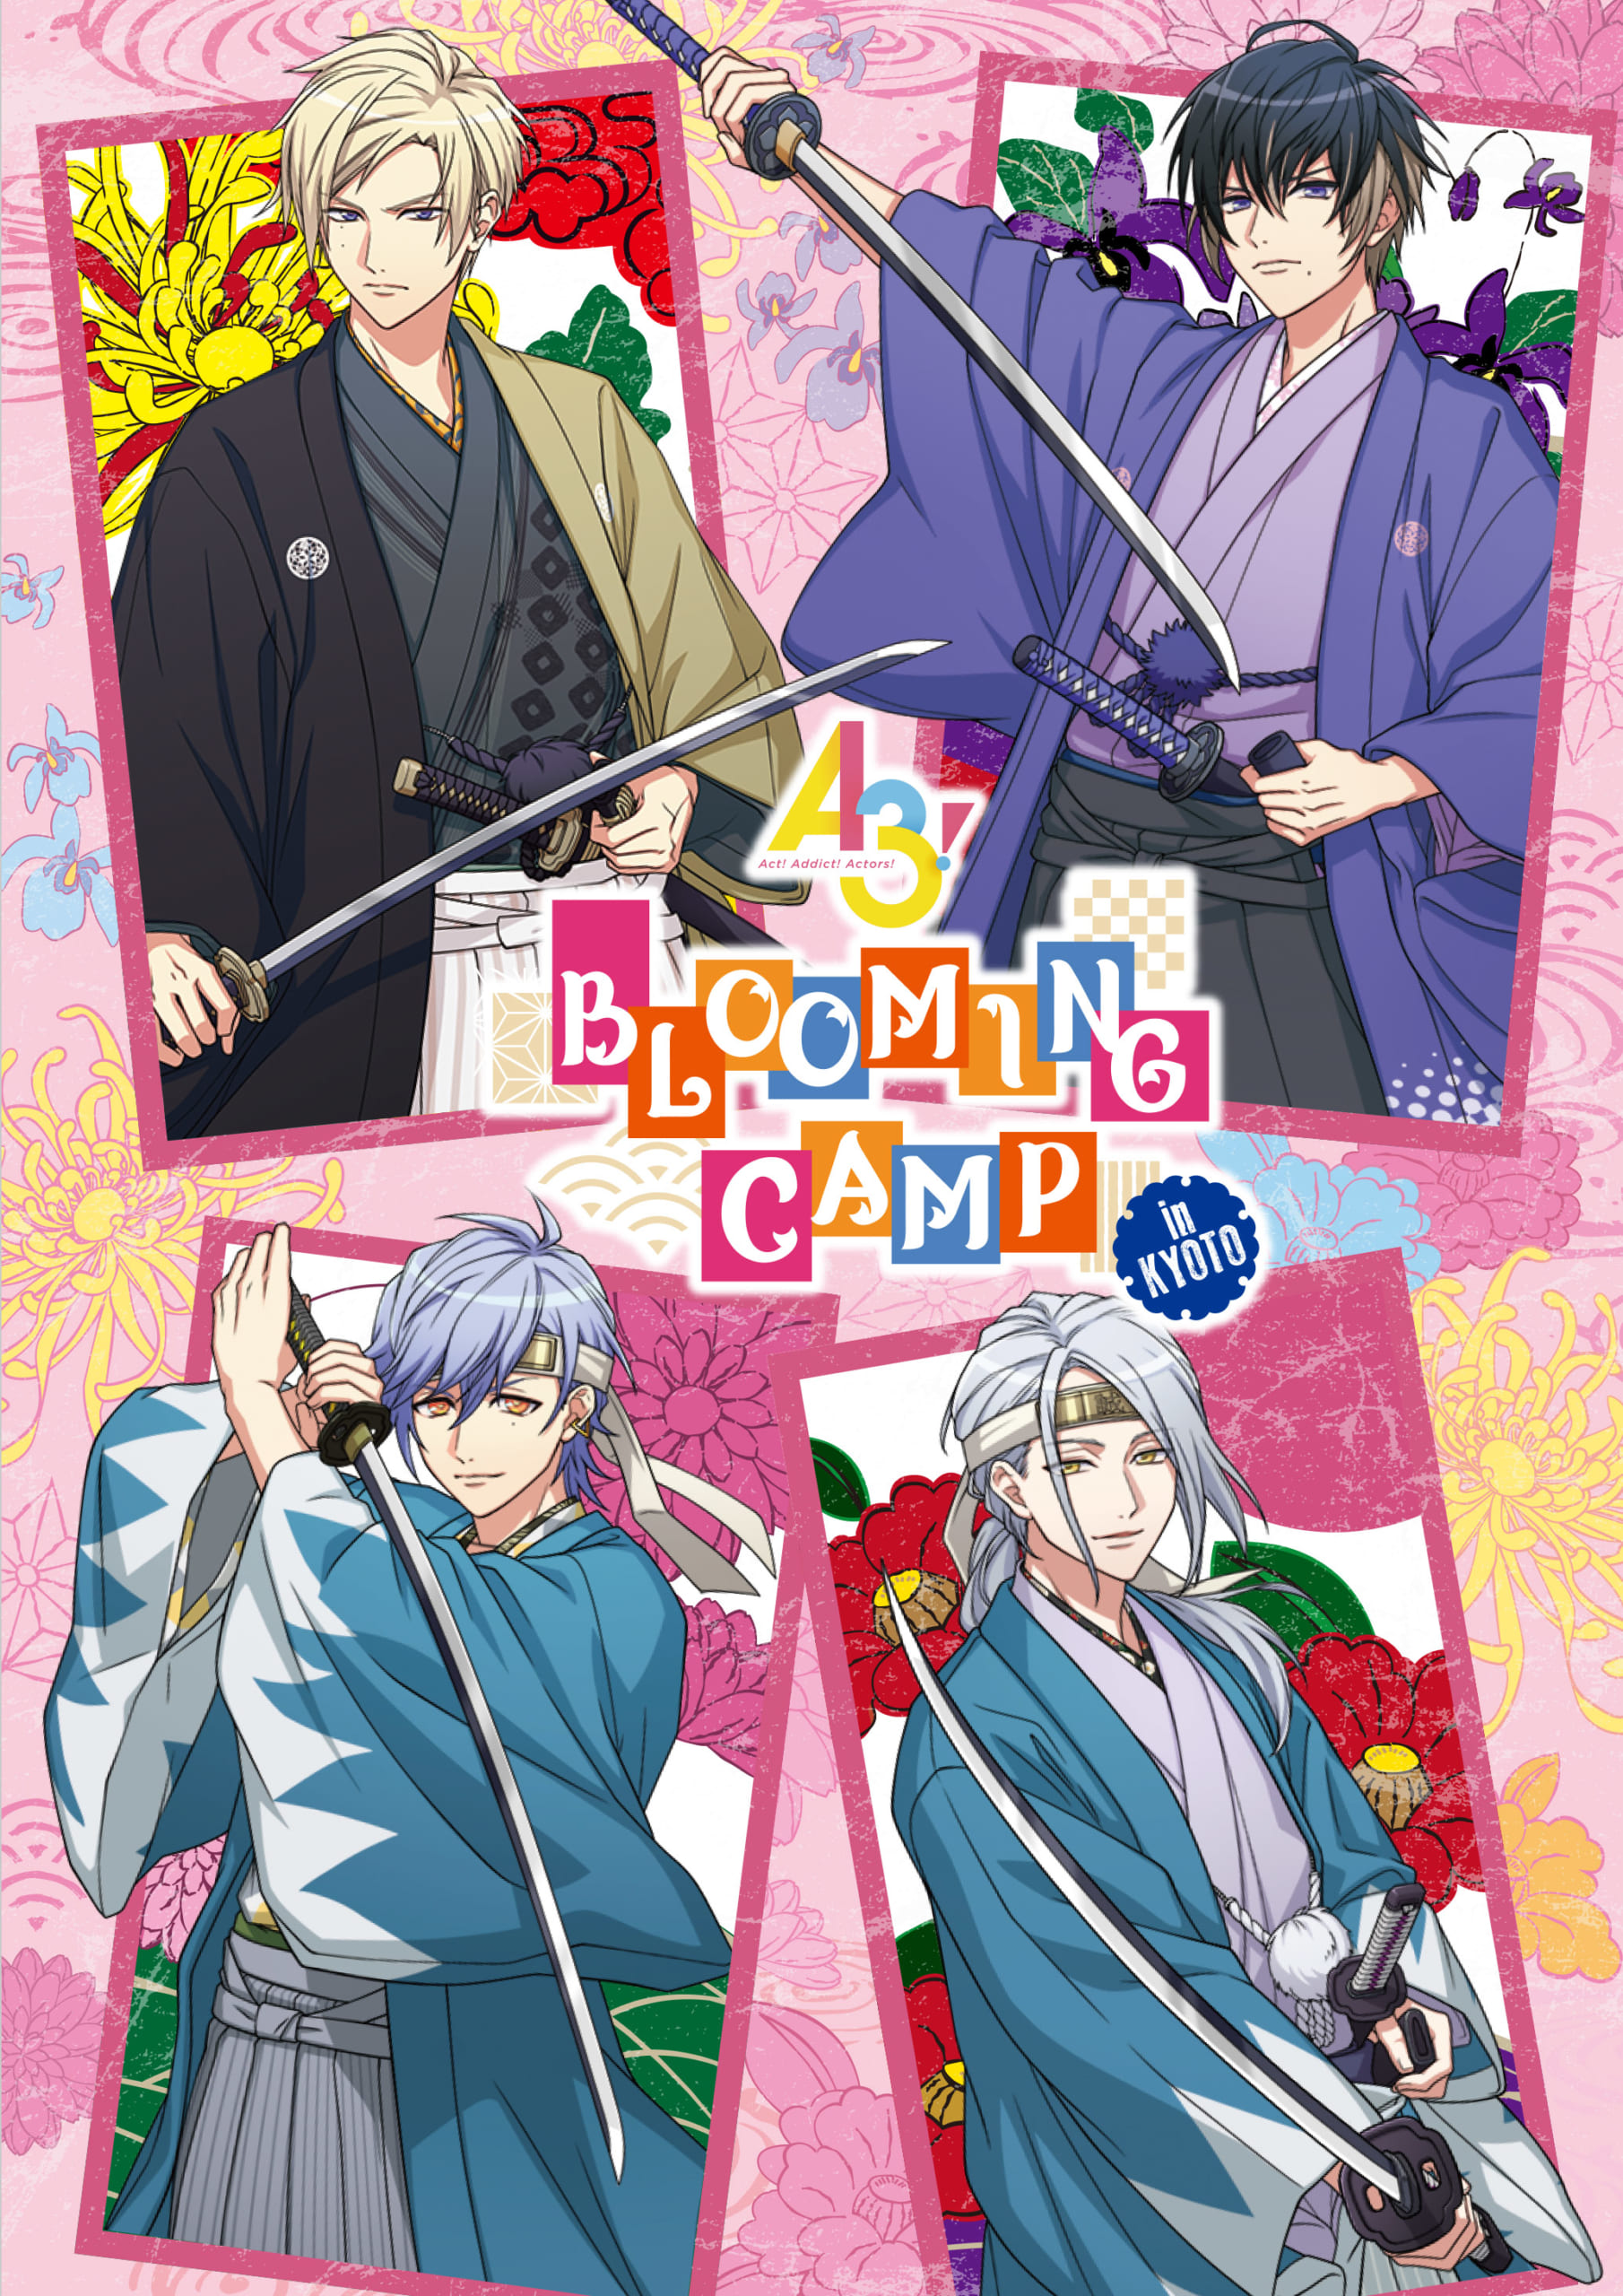 A3! BLOOMING CAMP in KYOTO 描き下ろし